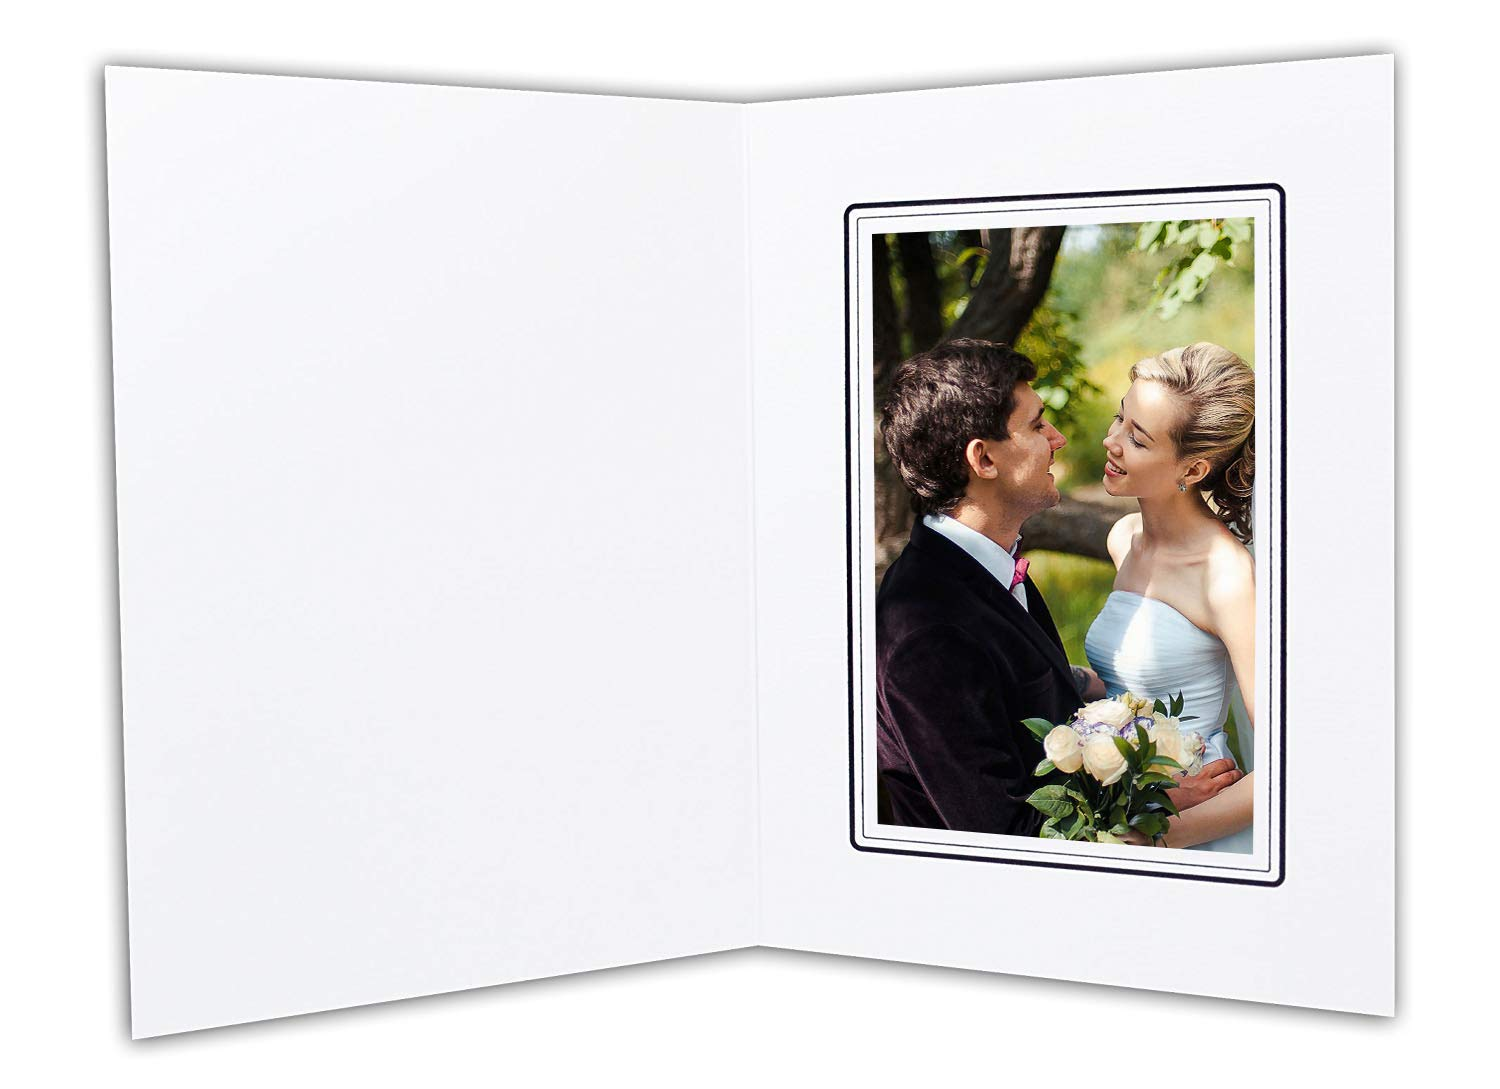 Golden State Art, White Cardboard Photo Folder for a 4x6 Photo - 100 Pack by Golden State Art